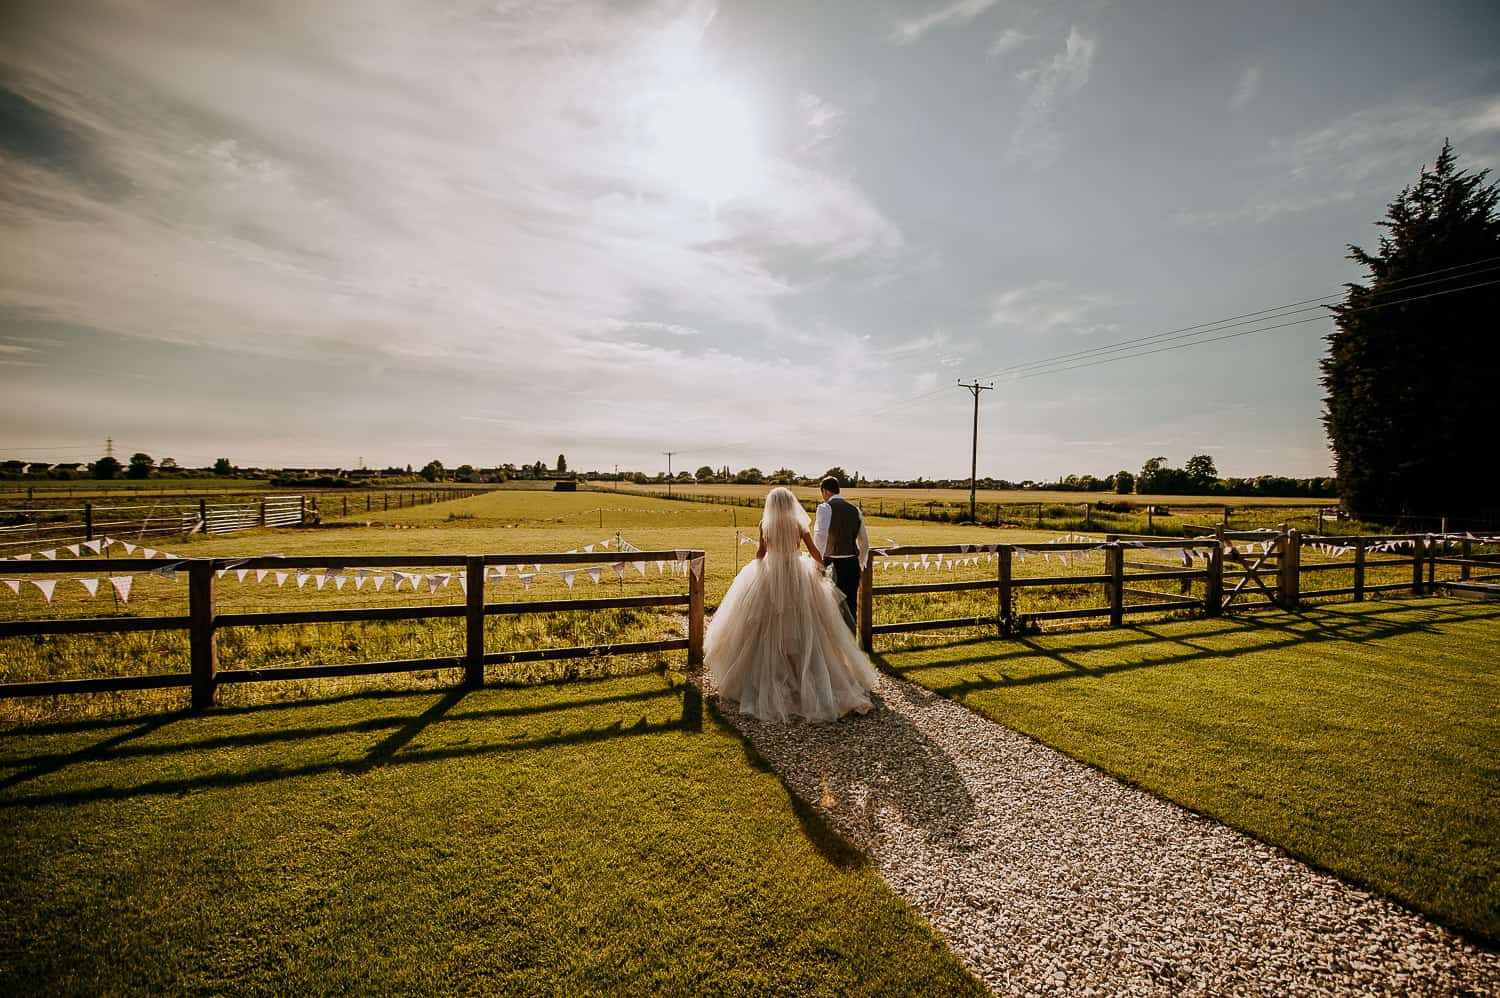 A bride and groom walk together at Berts Barrow wedding venue